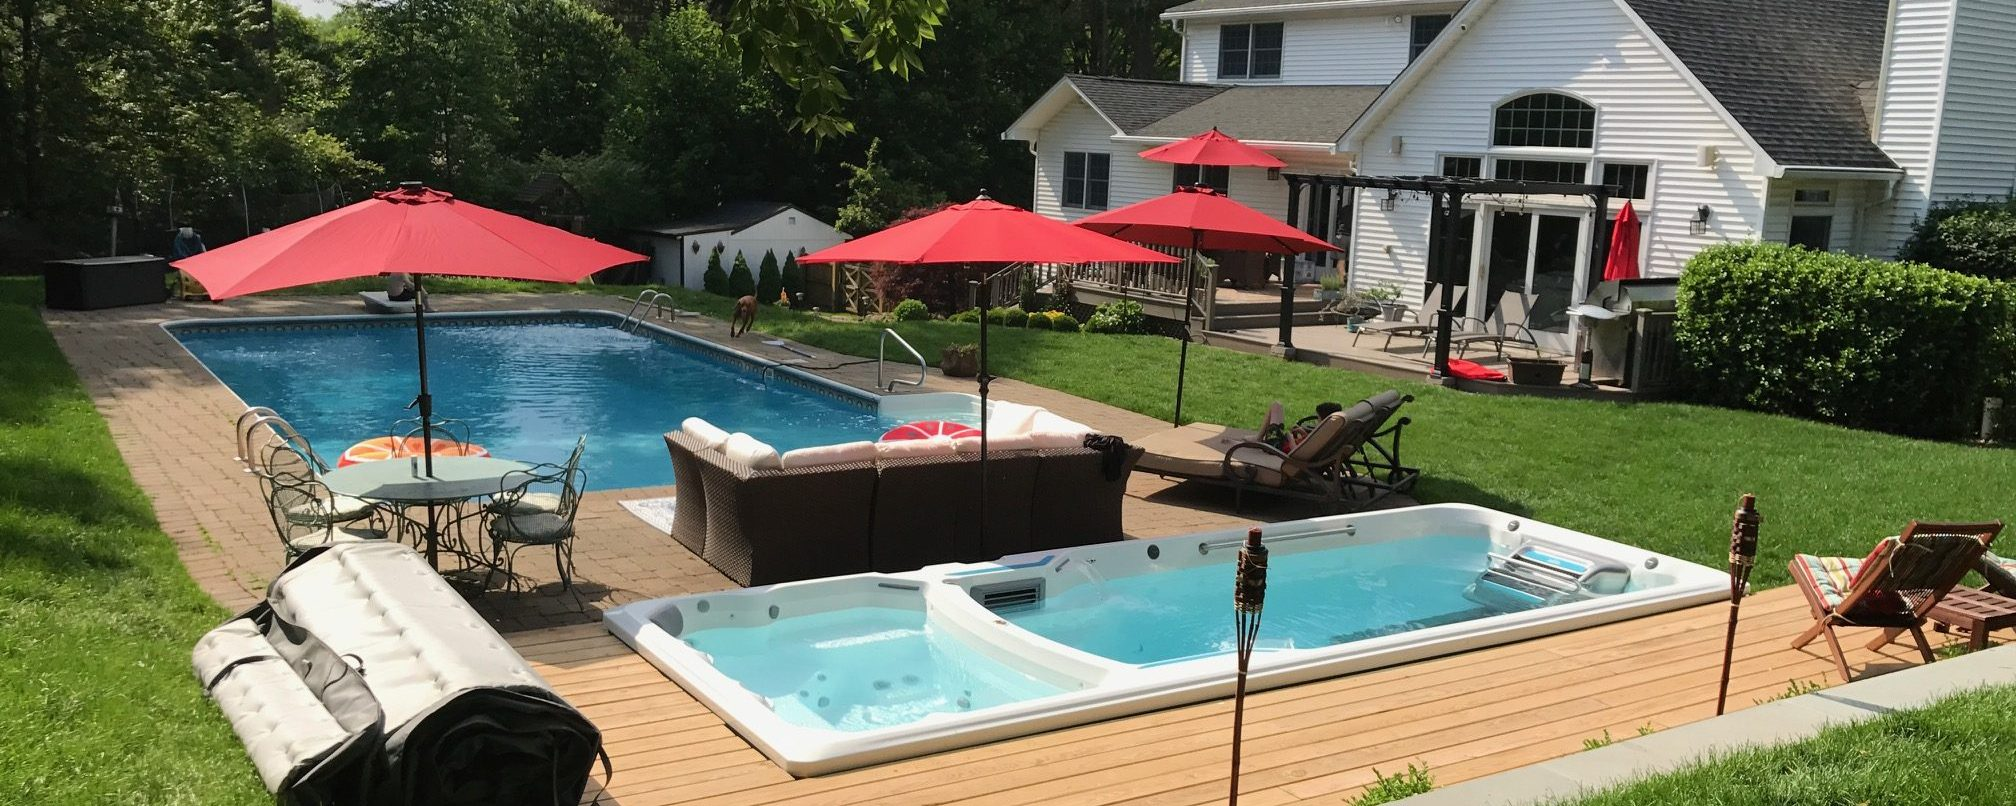 Is It Worth Getting on a Pool Builder's Waitlist?